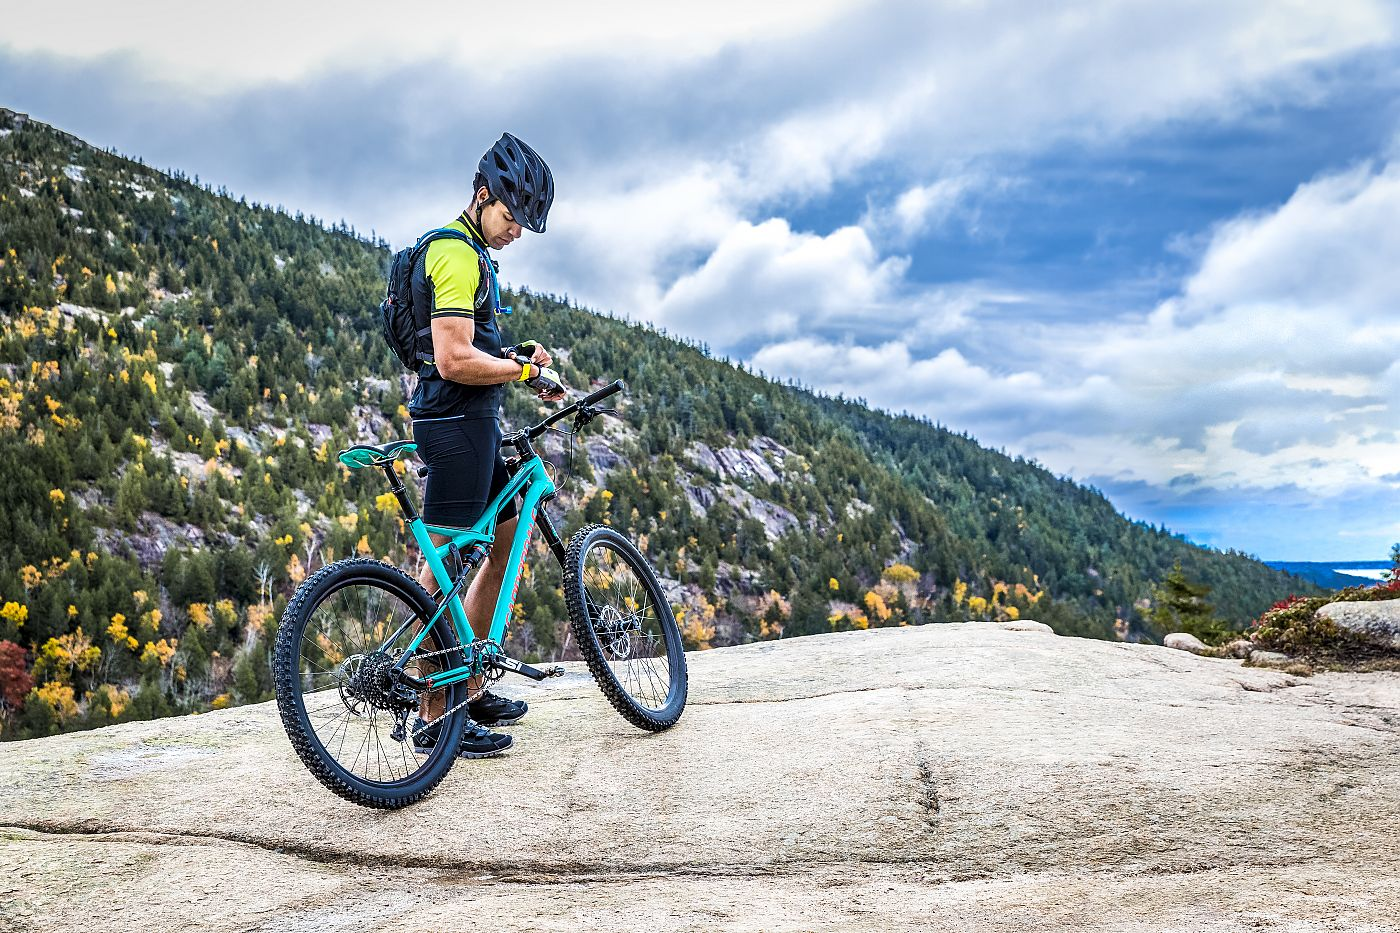 http://www.bicycleretailer.com/sites/default/files/styles/colorbox_popup/public/images/article/fenix%205%20Lifestyle_4.jpg